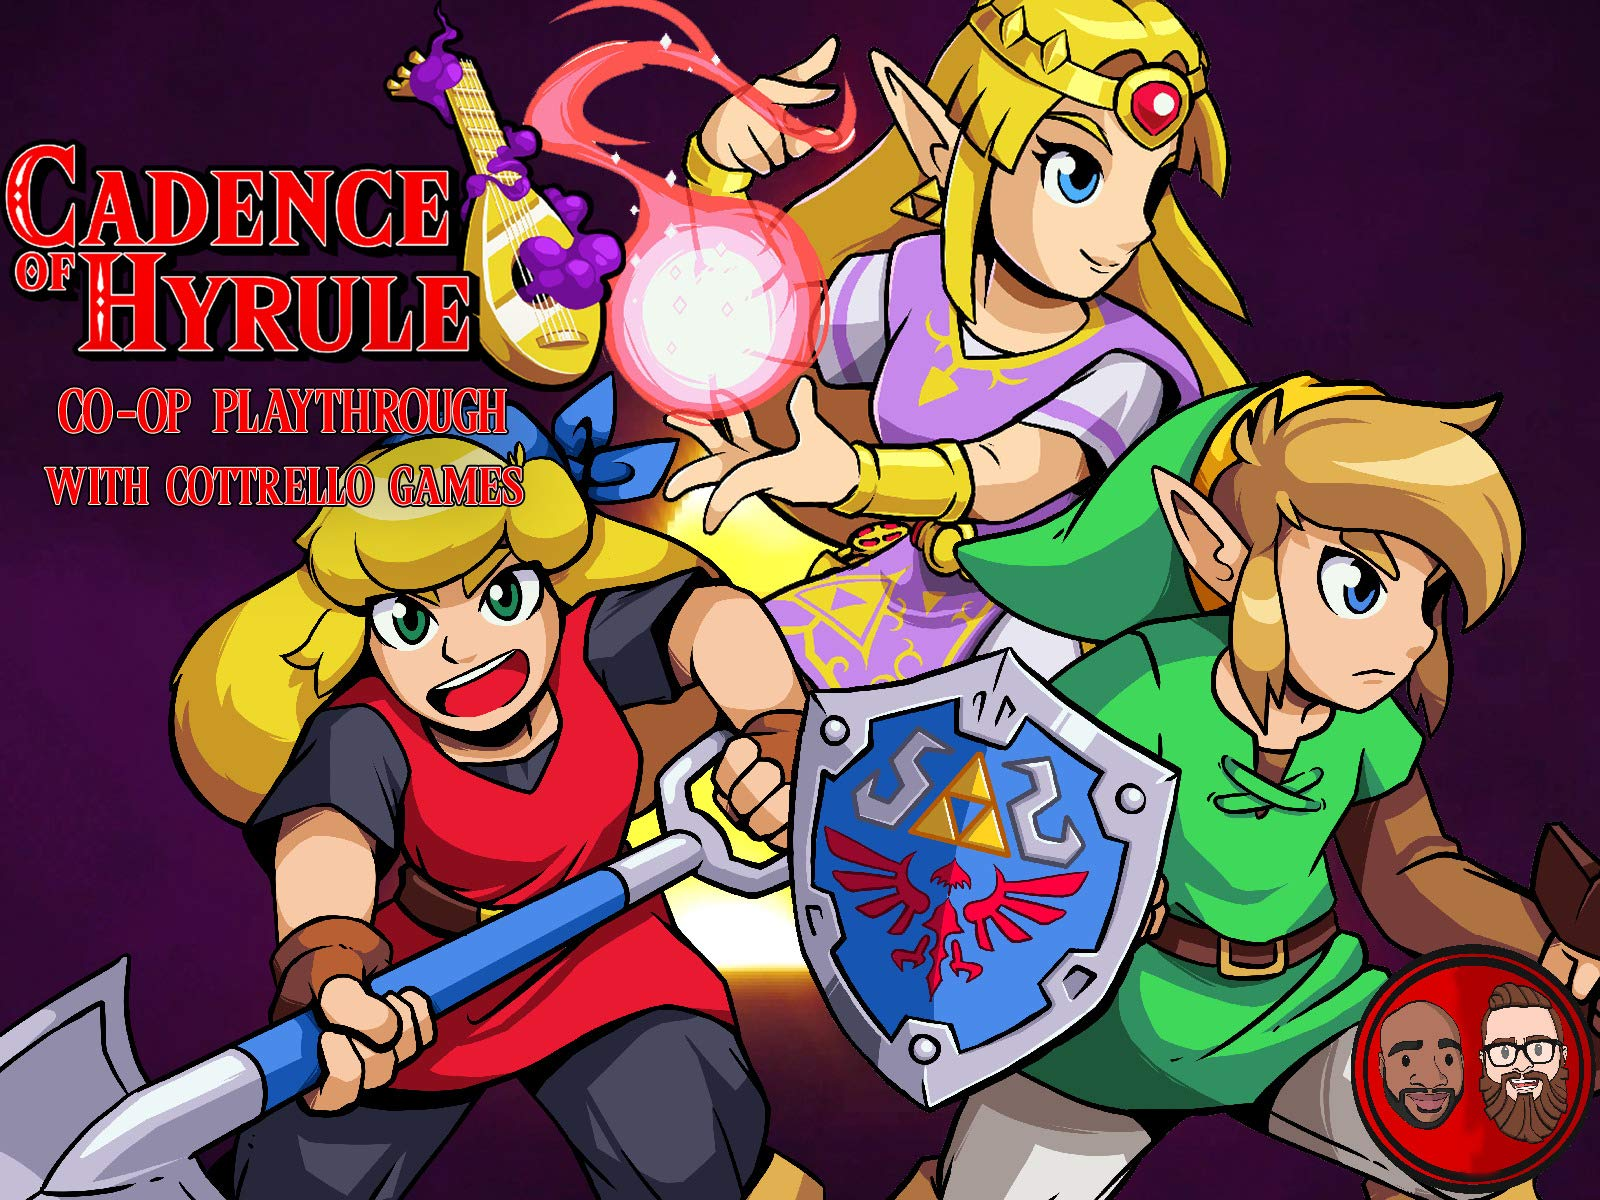 Cadence of Hyrule Co-Op Playthrough with Cottrello Games on Amazon Prime Video UK